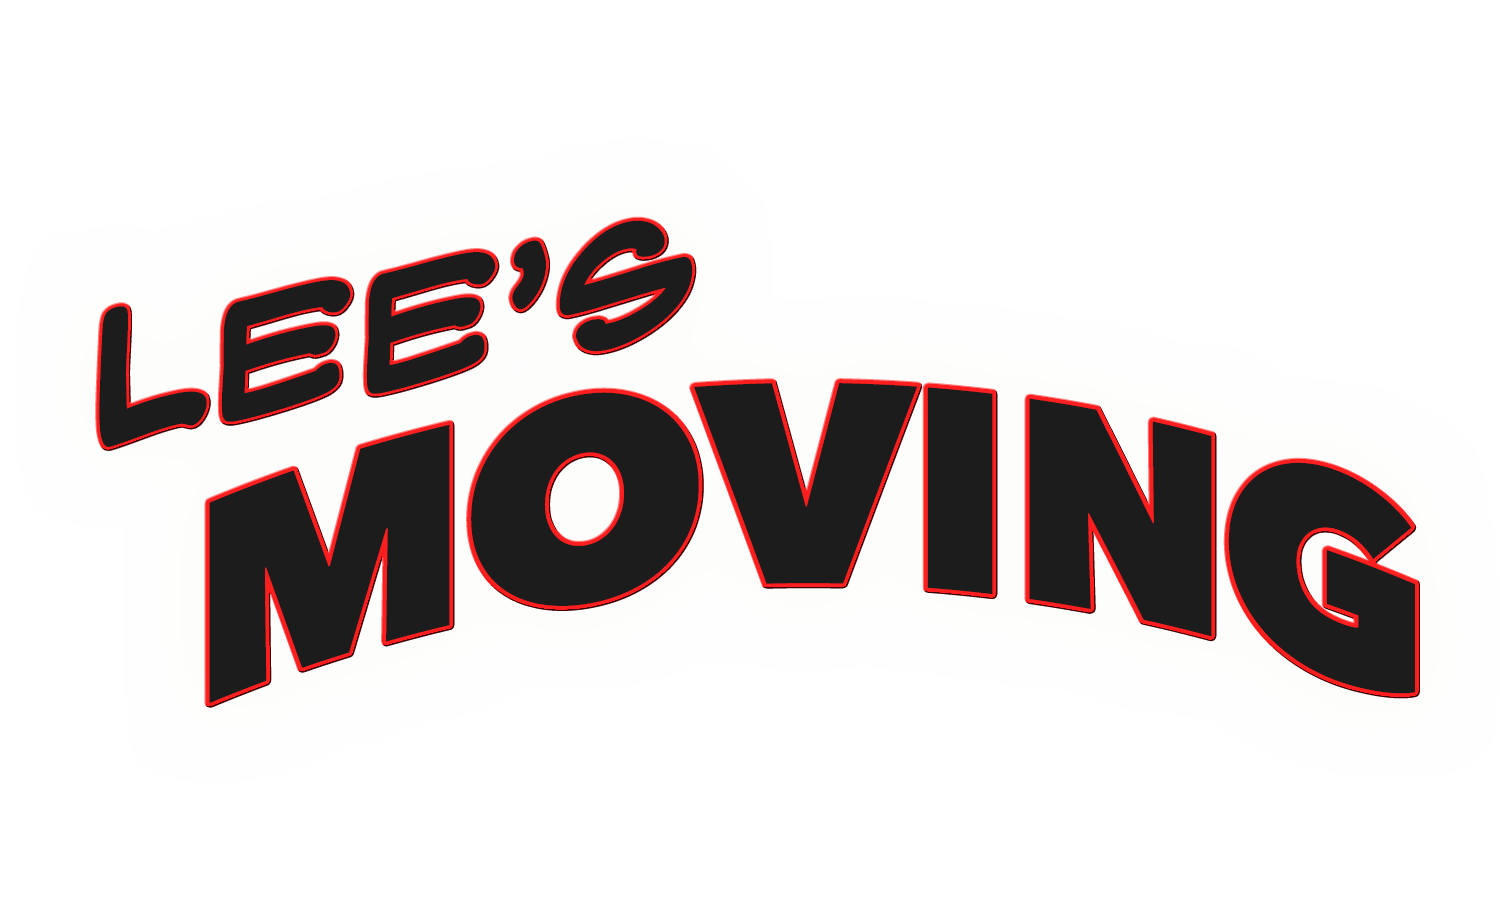 Lee's Moving, Redding, California